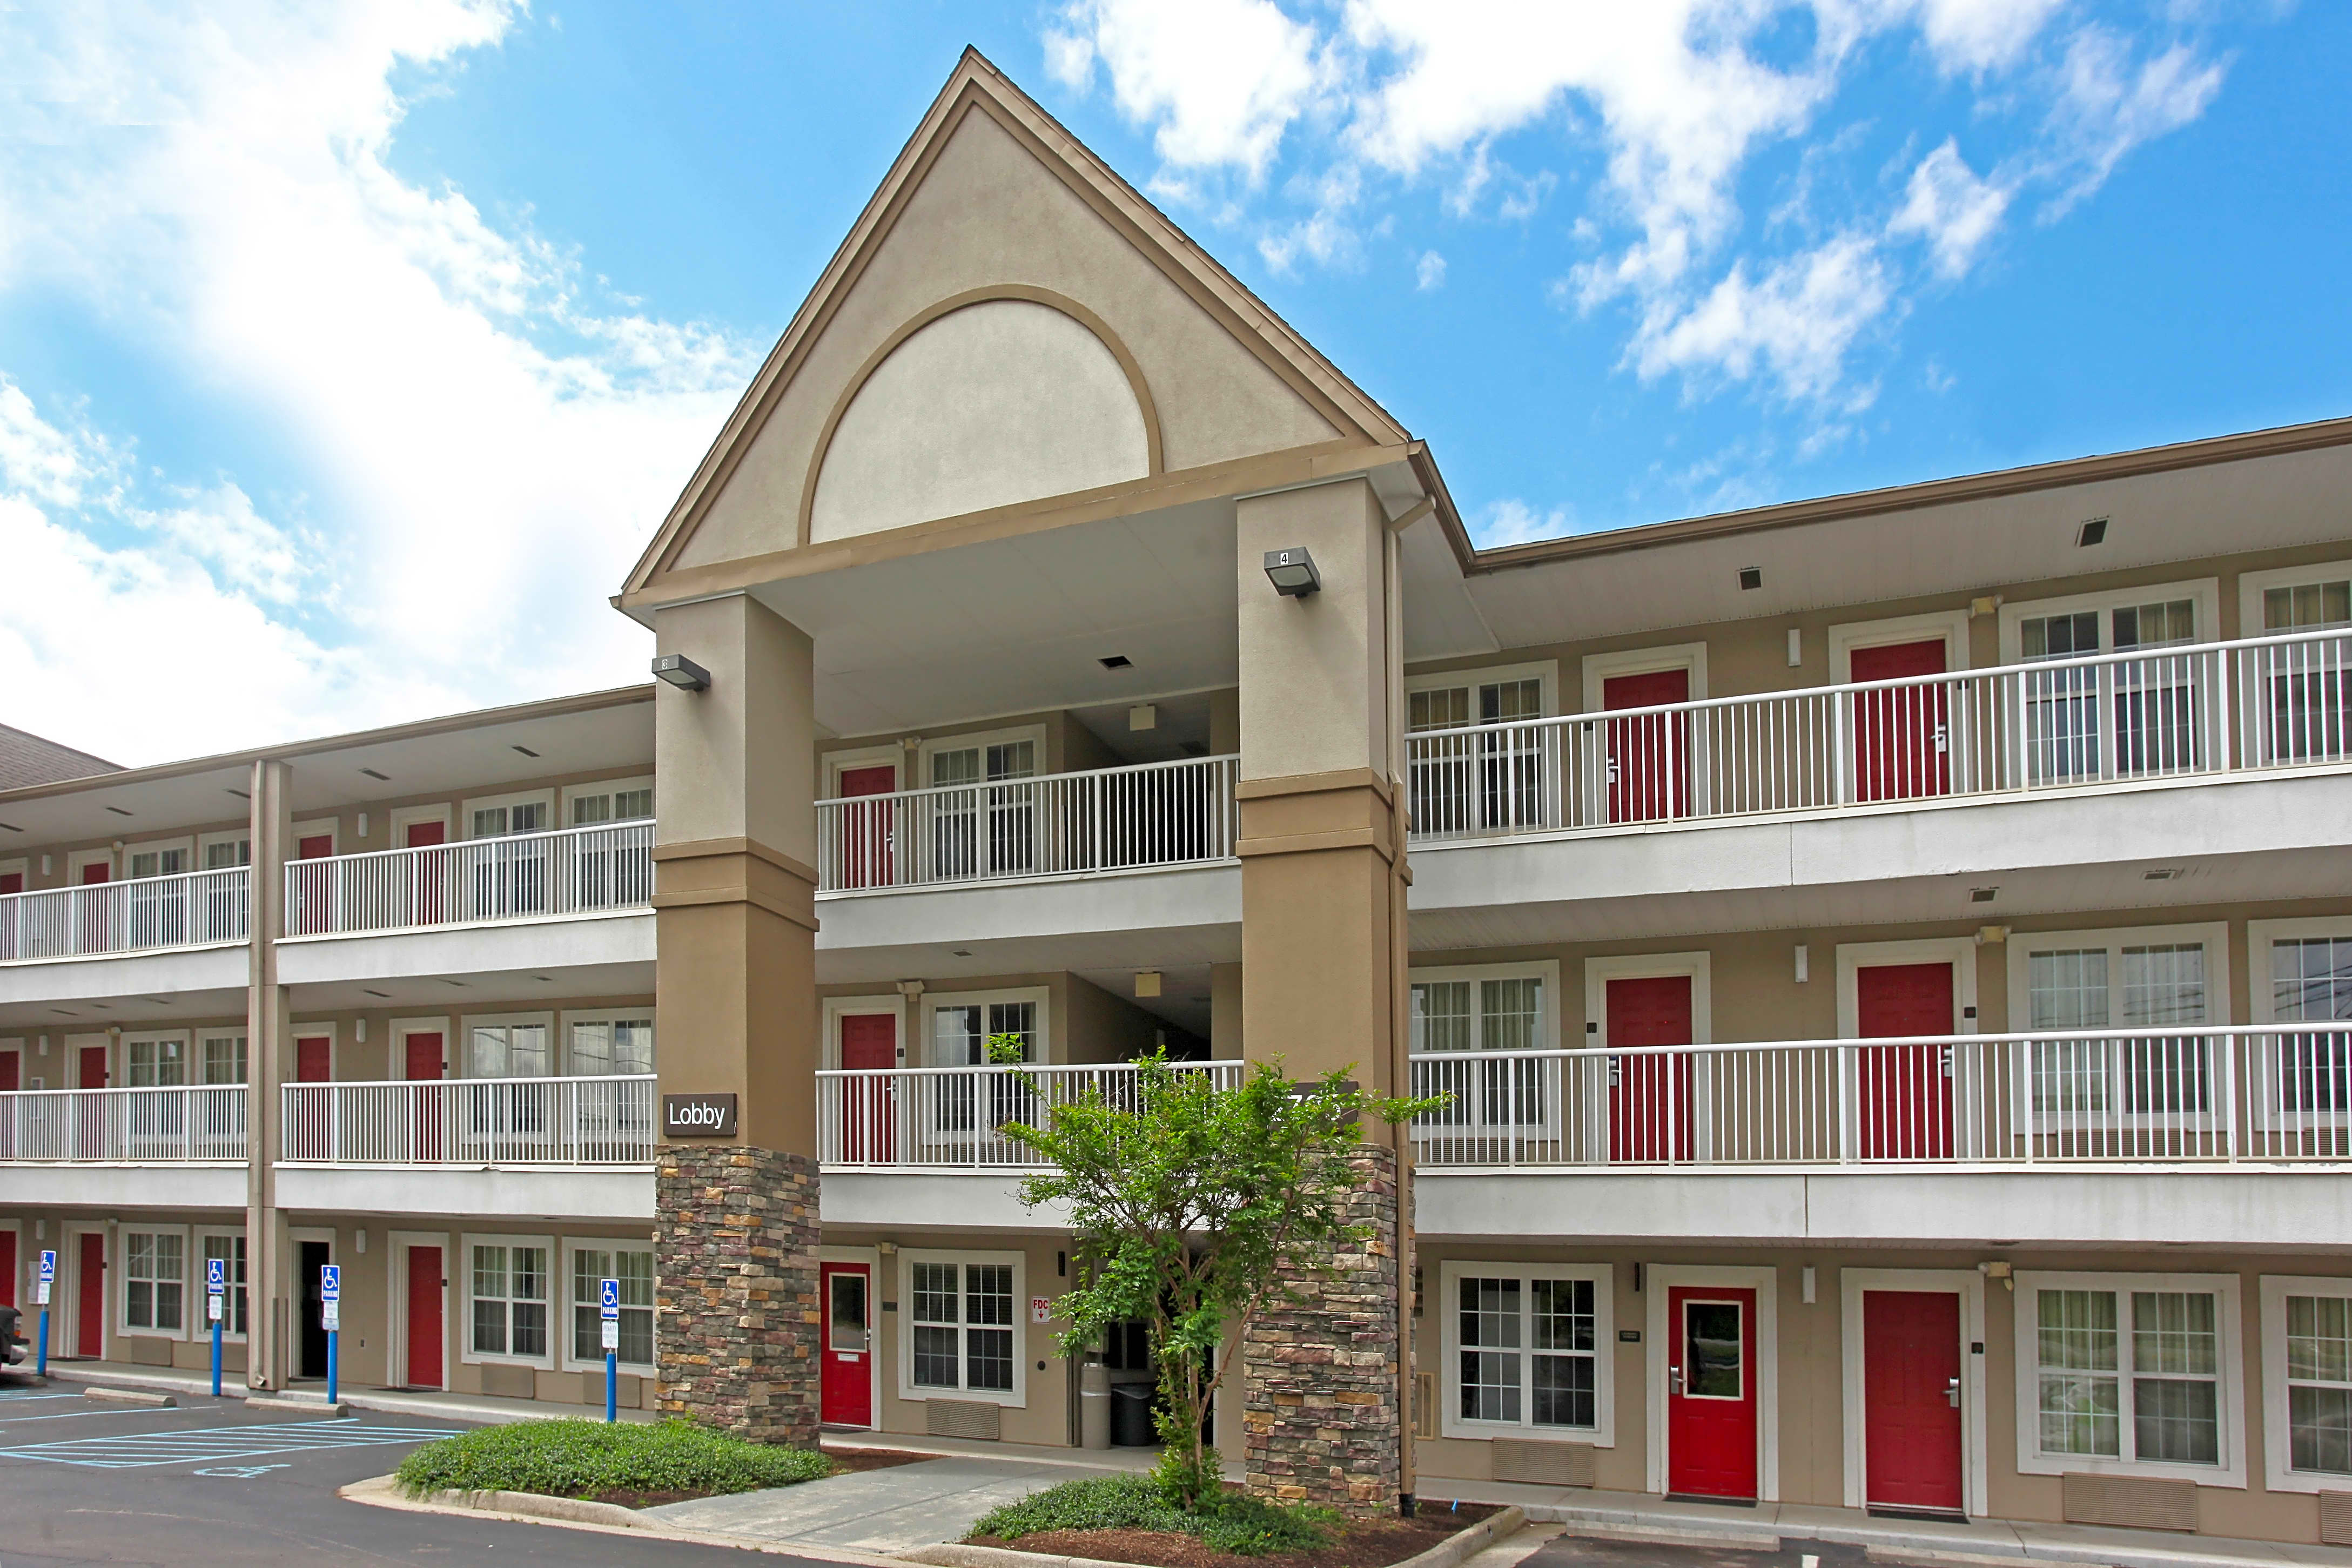 Apartments Near Hollins Furnished Studio - Roanoke - Airport for Hollins University Students in Roanoke, VA